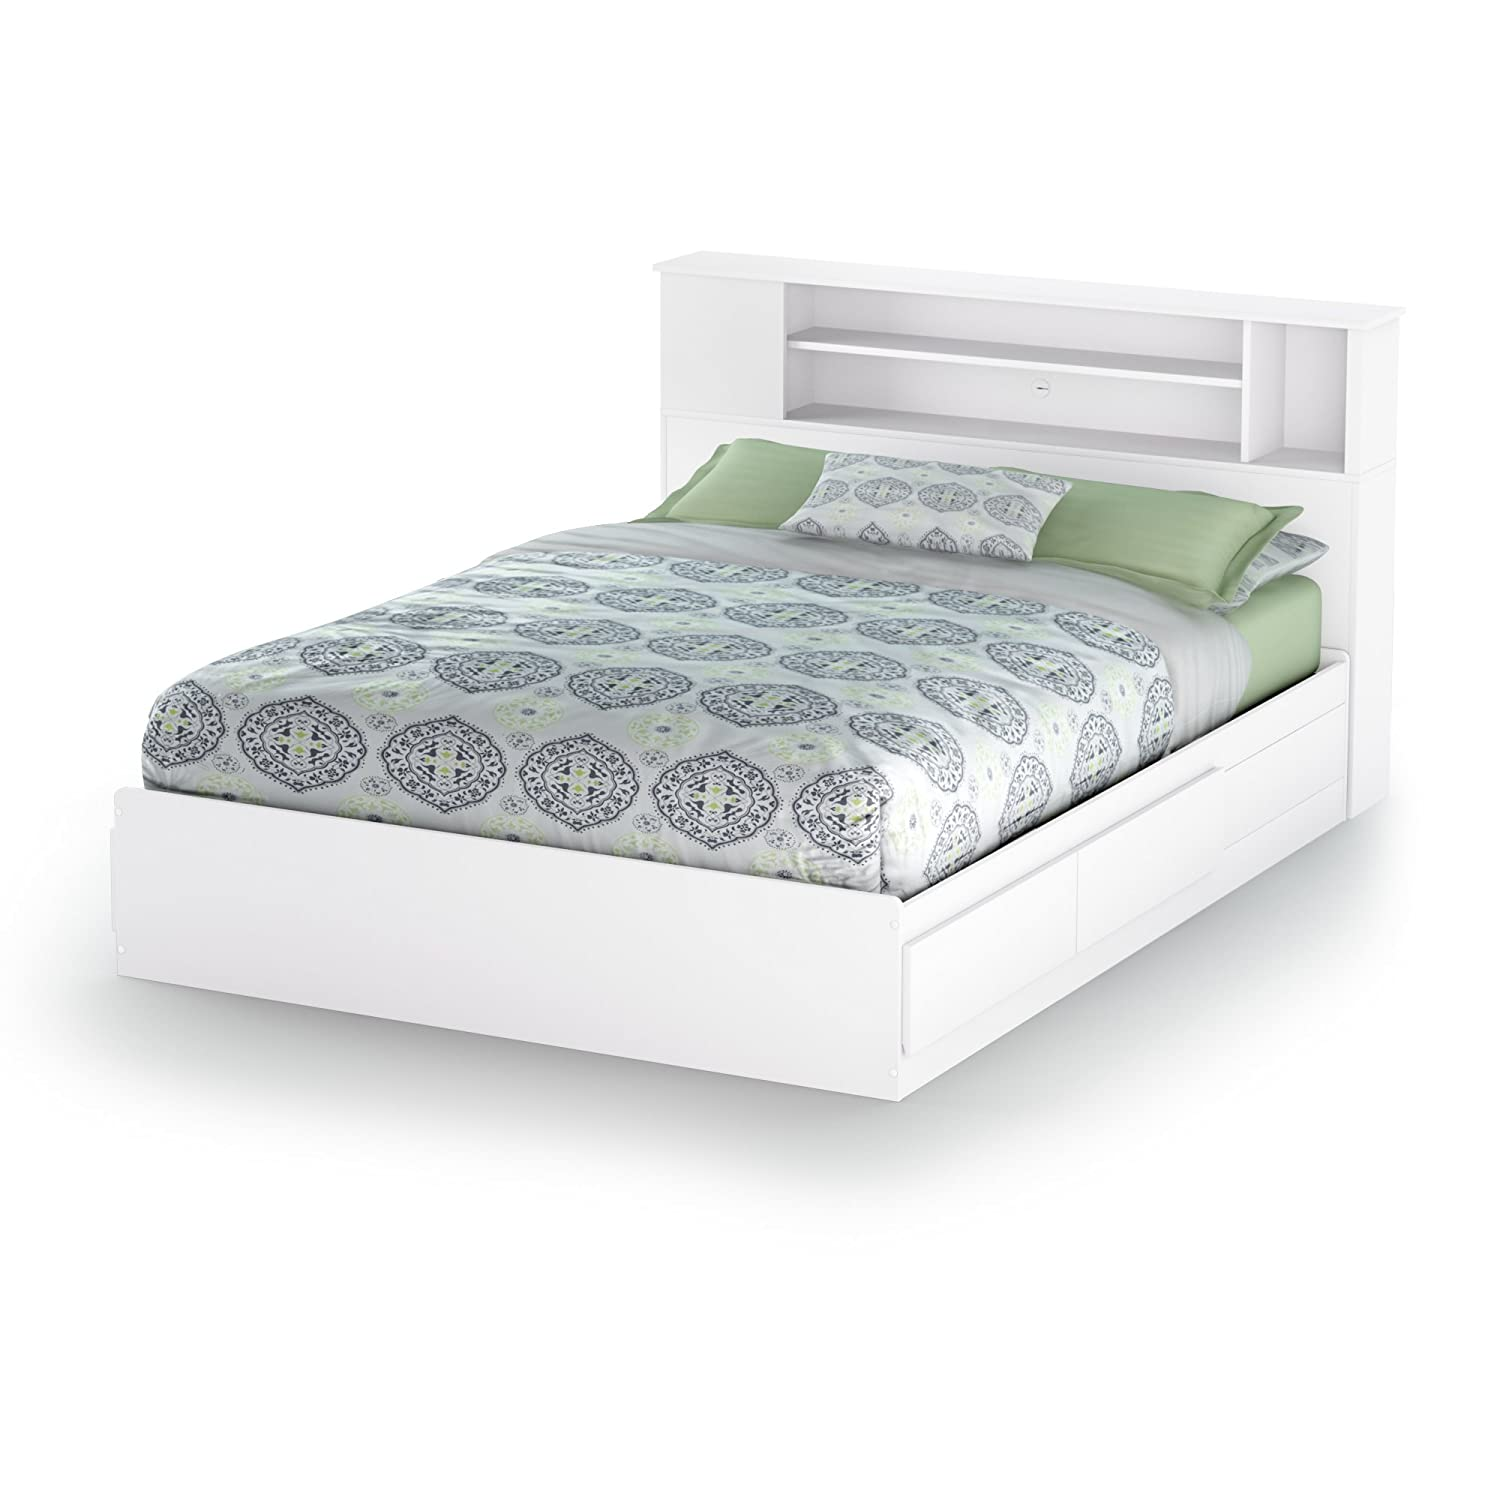 Amazon.com South Shore Vito Bookcase Headboard with Storage Full/Queen 54/60-inch Pure White Kitchen u0026 Dining  sc 1 st  Amazon.com : bed frame with headboard storage  - Aquiesqueretaro.Com